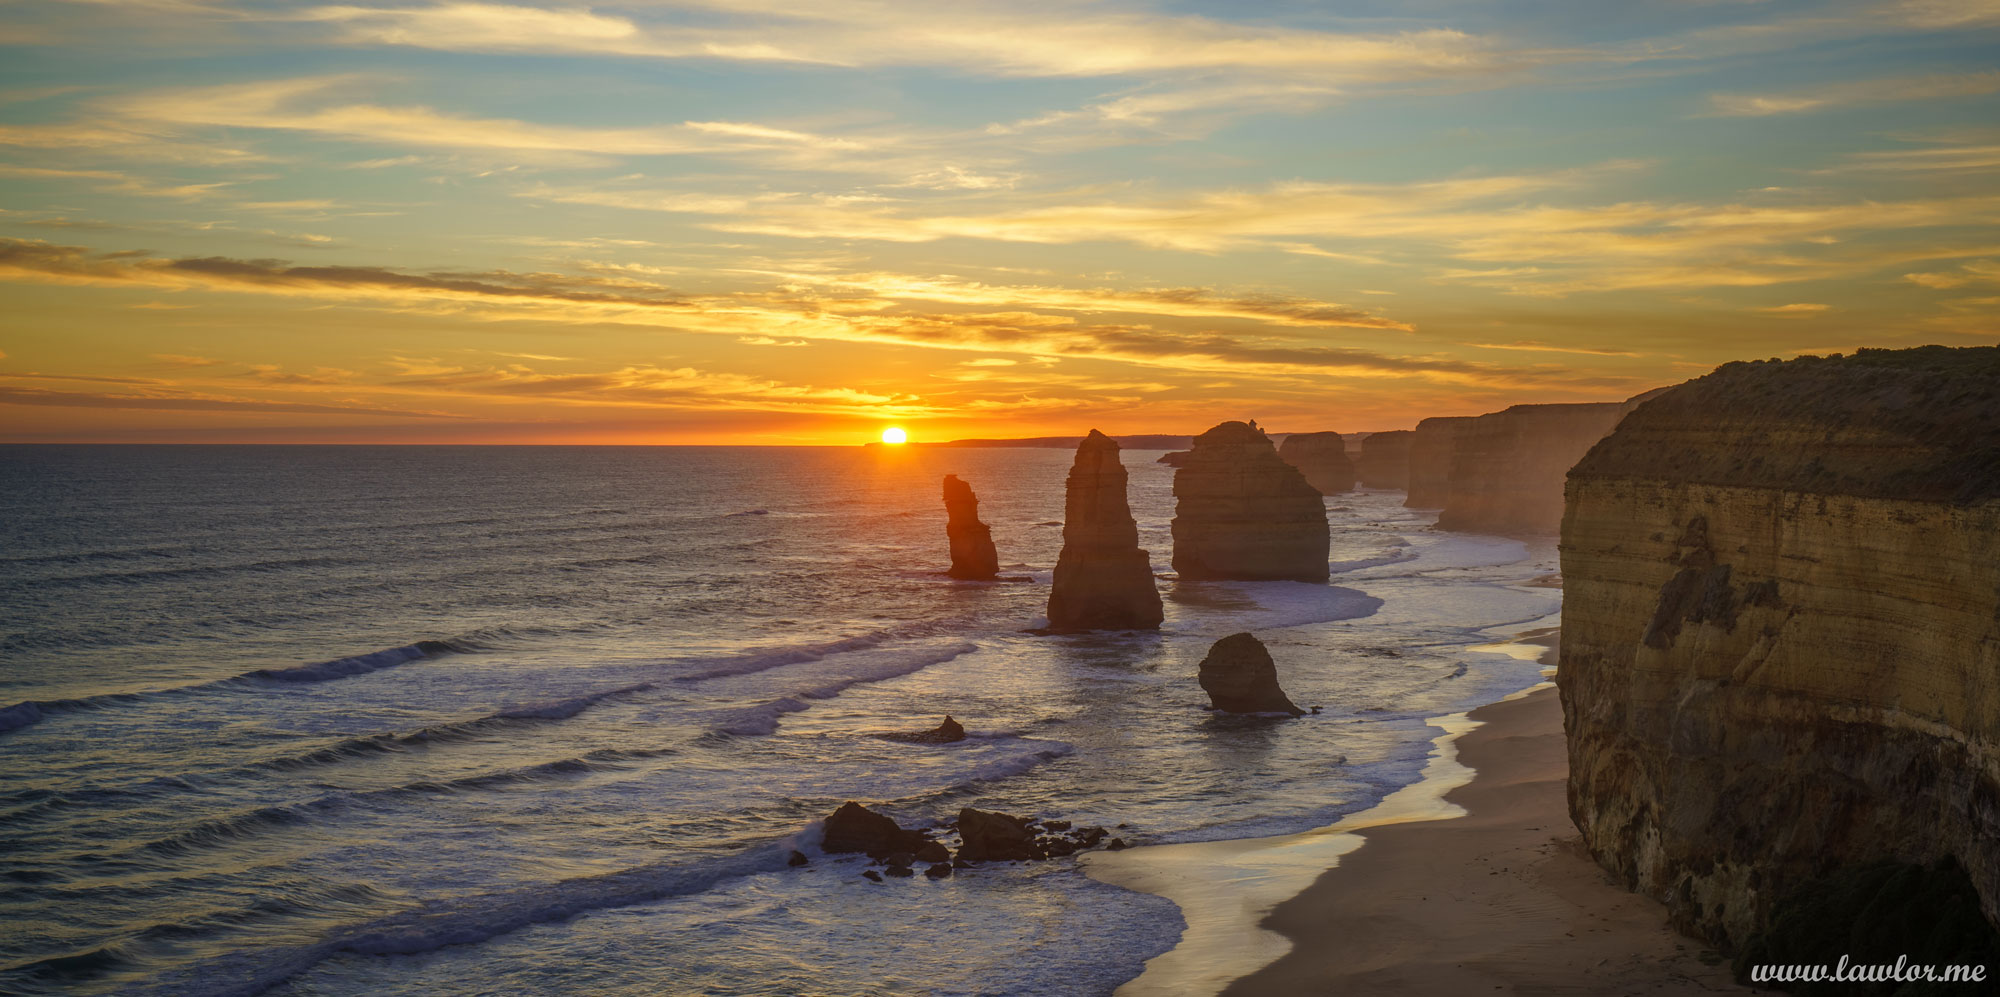 Free Landscape Photography, free landscape photos, free nature images, free HD images, free high definition stock images, free stock images download, desktop background, desktop wallpapers, free screensaver, landscape photography, lawlor's landscape's, steve Lawlor photography, 12 apostles, victoria, australia